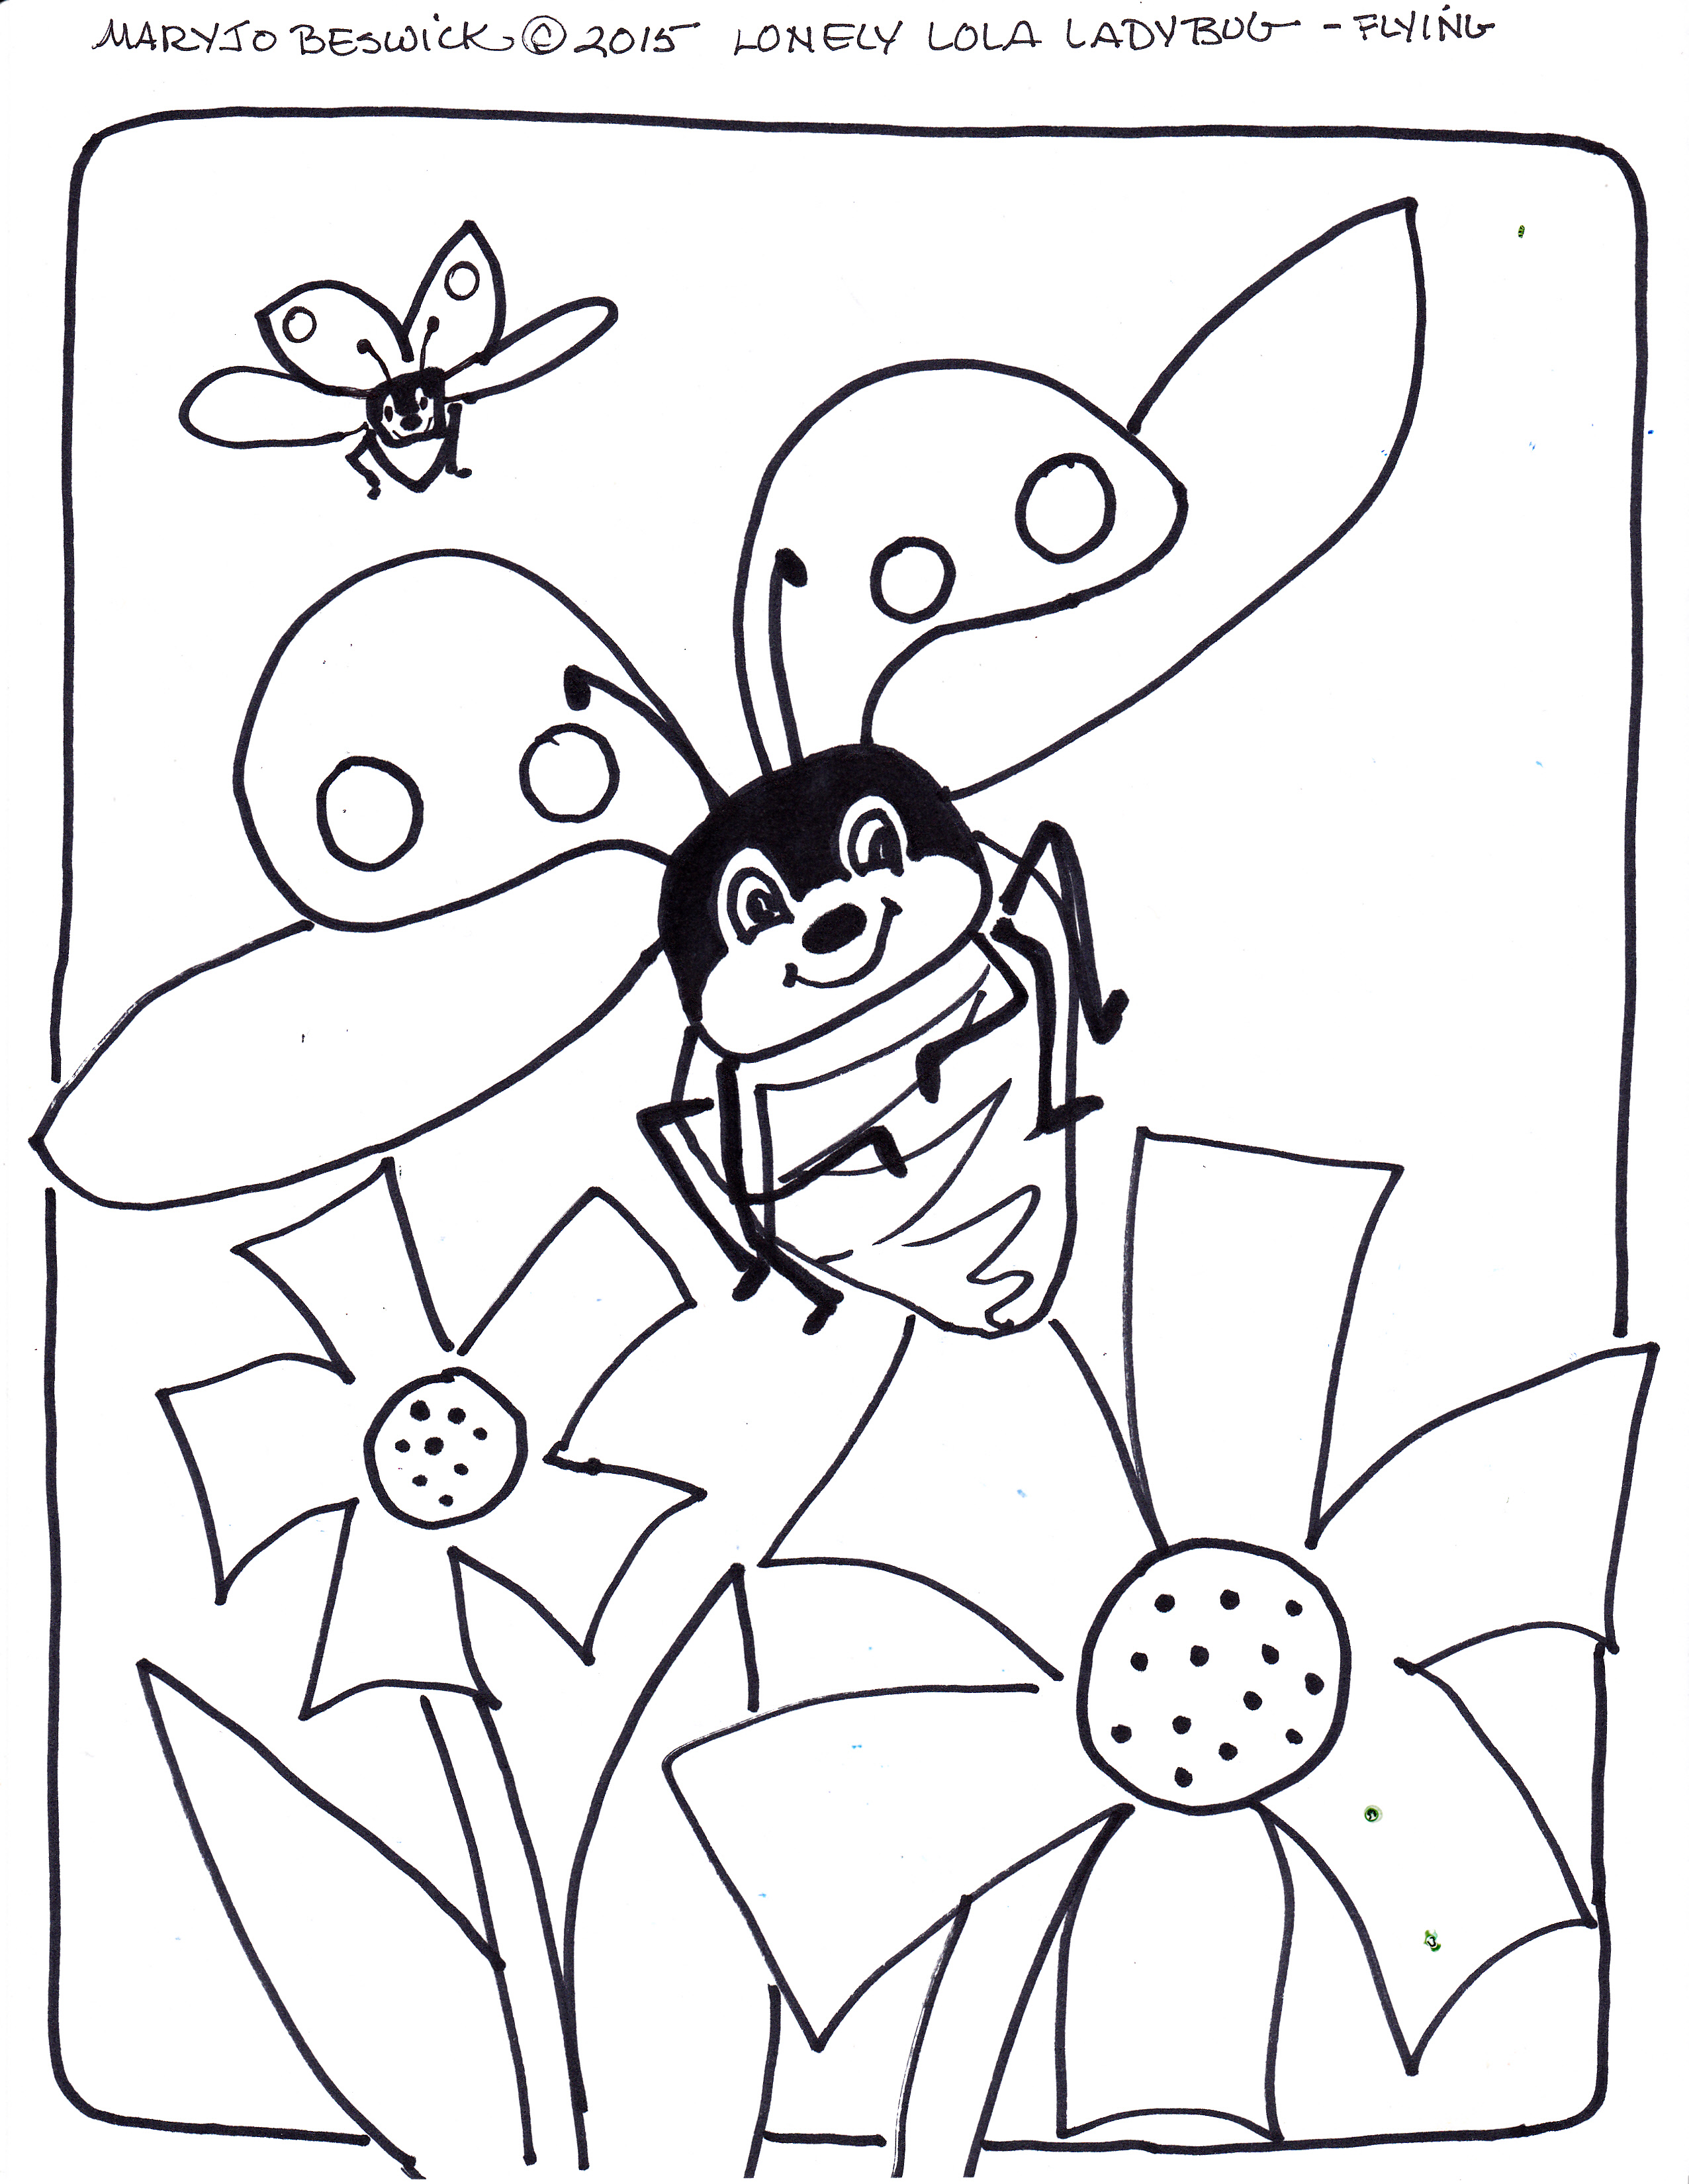 coloring pages of flying ladybugs - photo#5